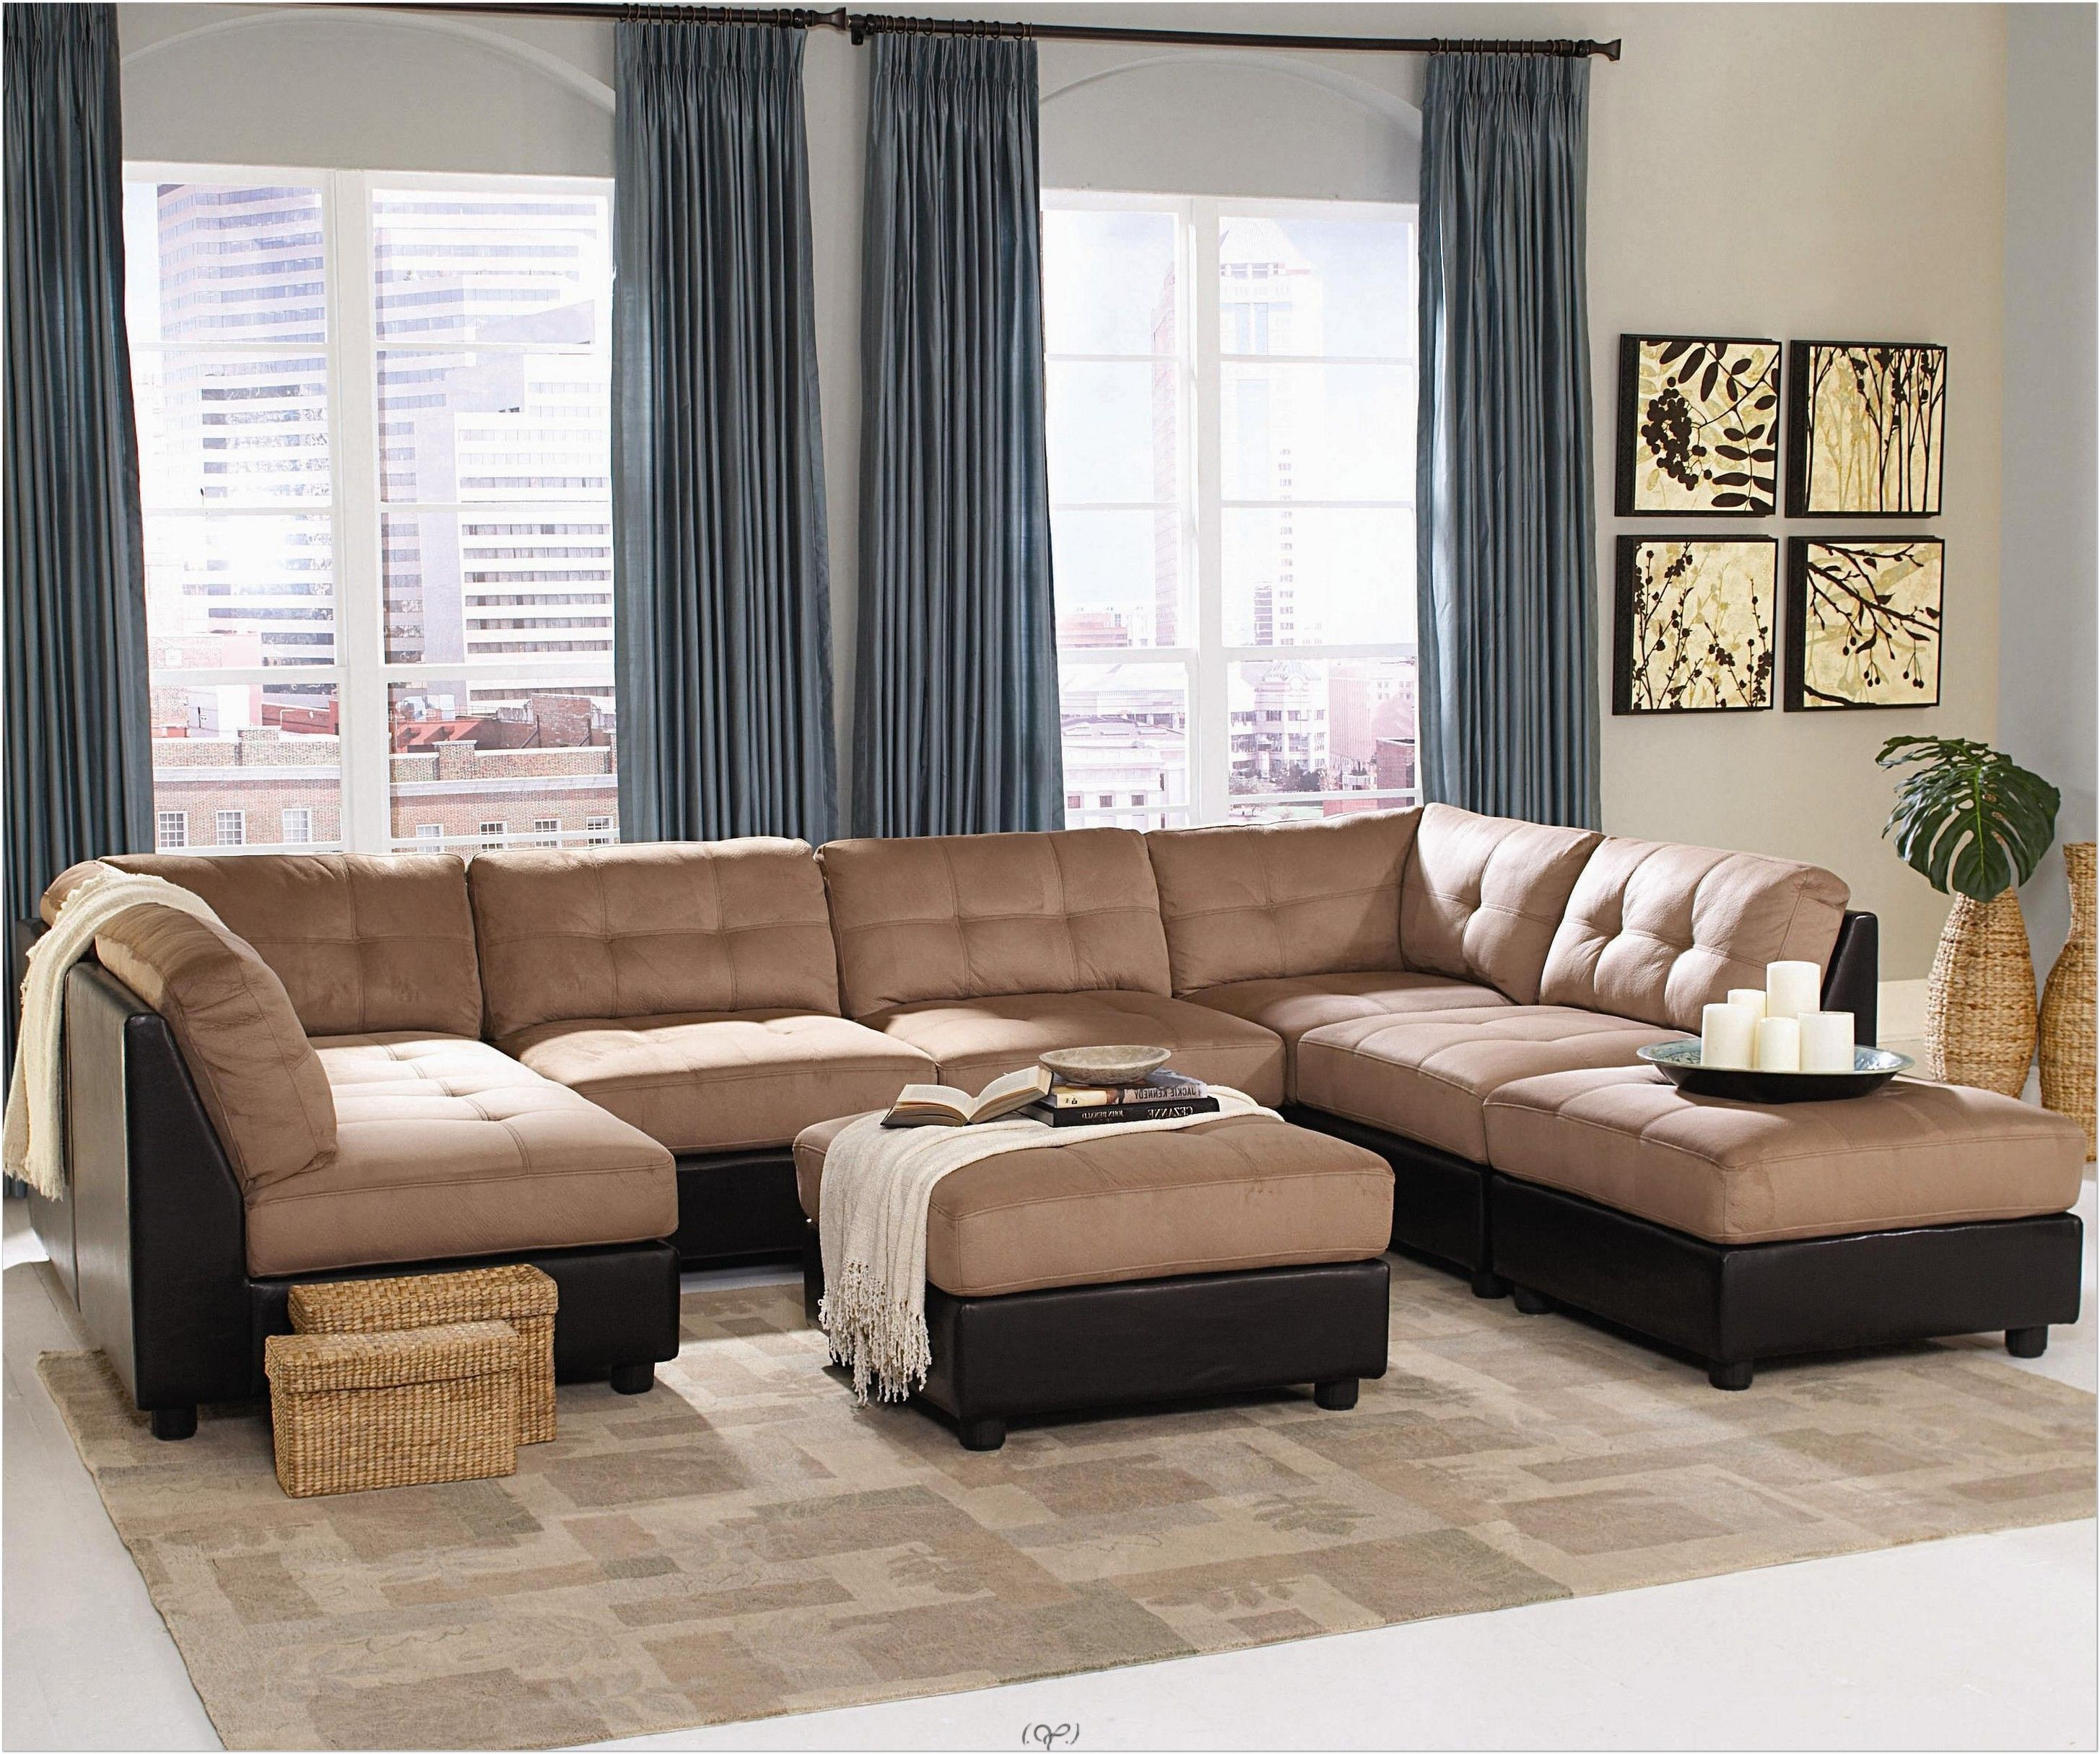 Sofa Sofa Covers With Foam Backing Xxl Sofa Covers Sofa Covers